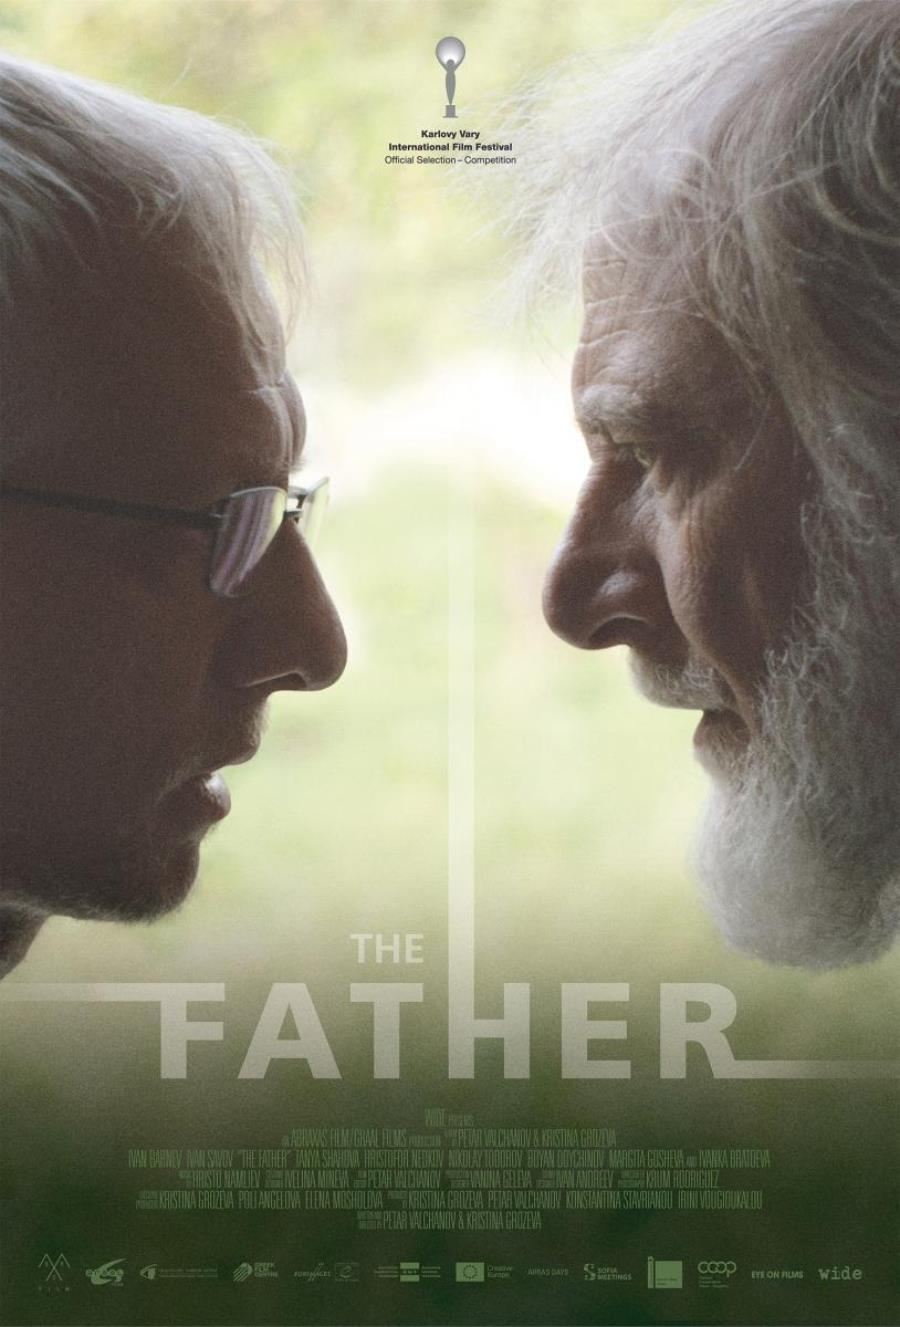 THE FATHER(1). THE FATHER